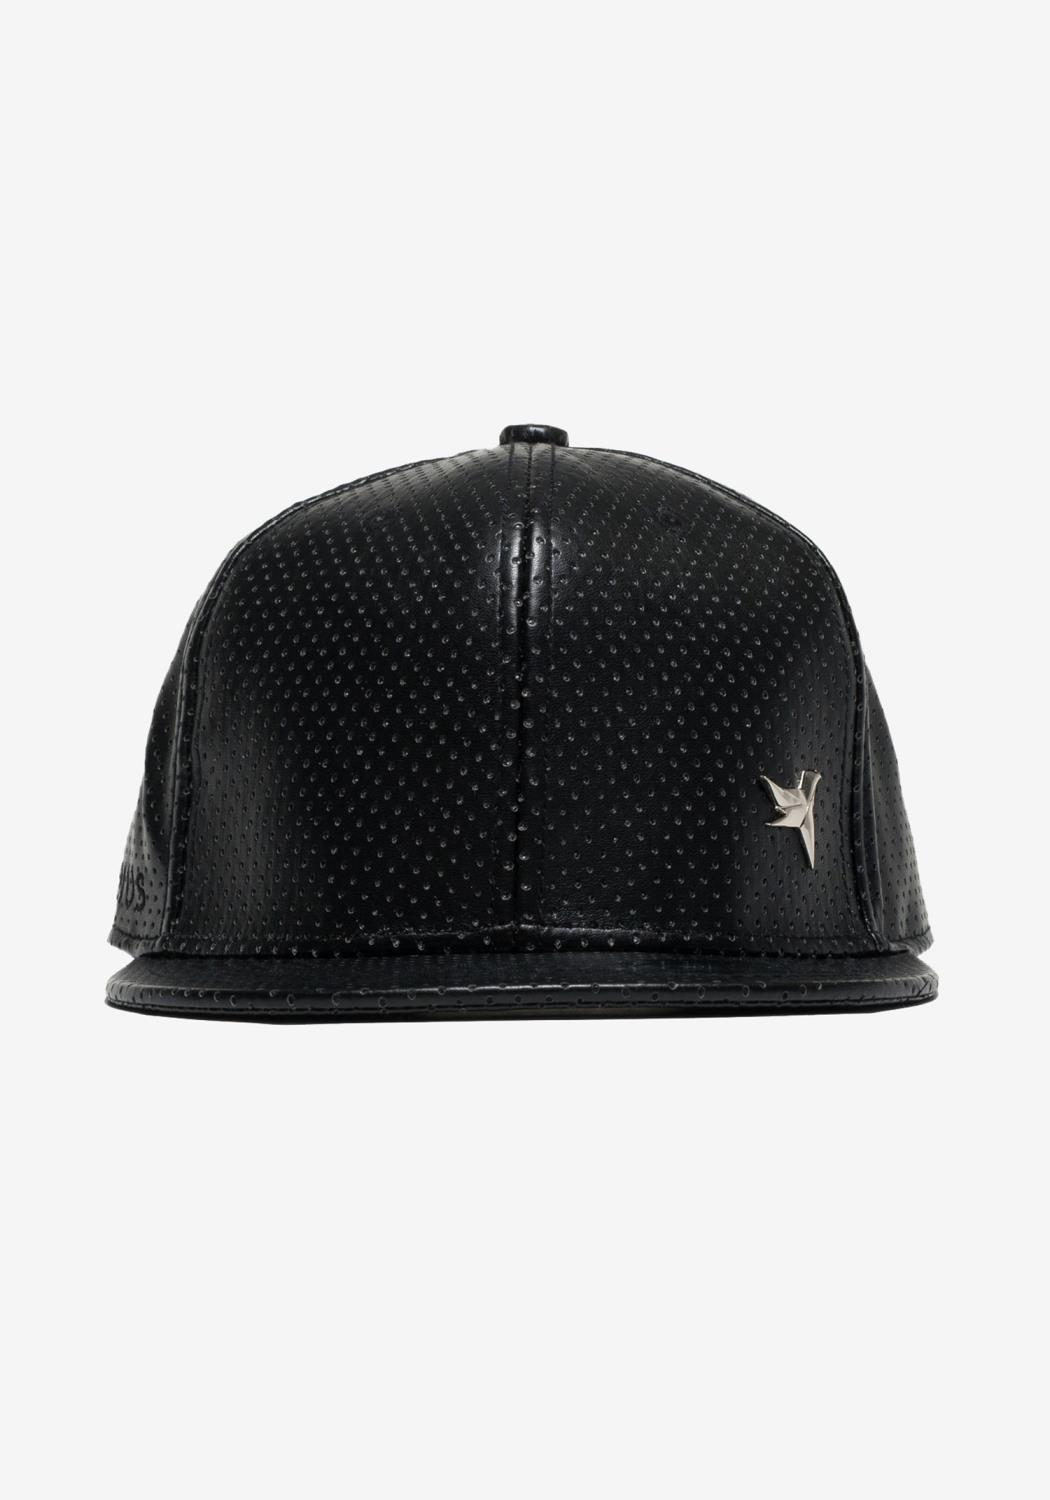 Perforated Pleather Snap Back with Bird logo